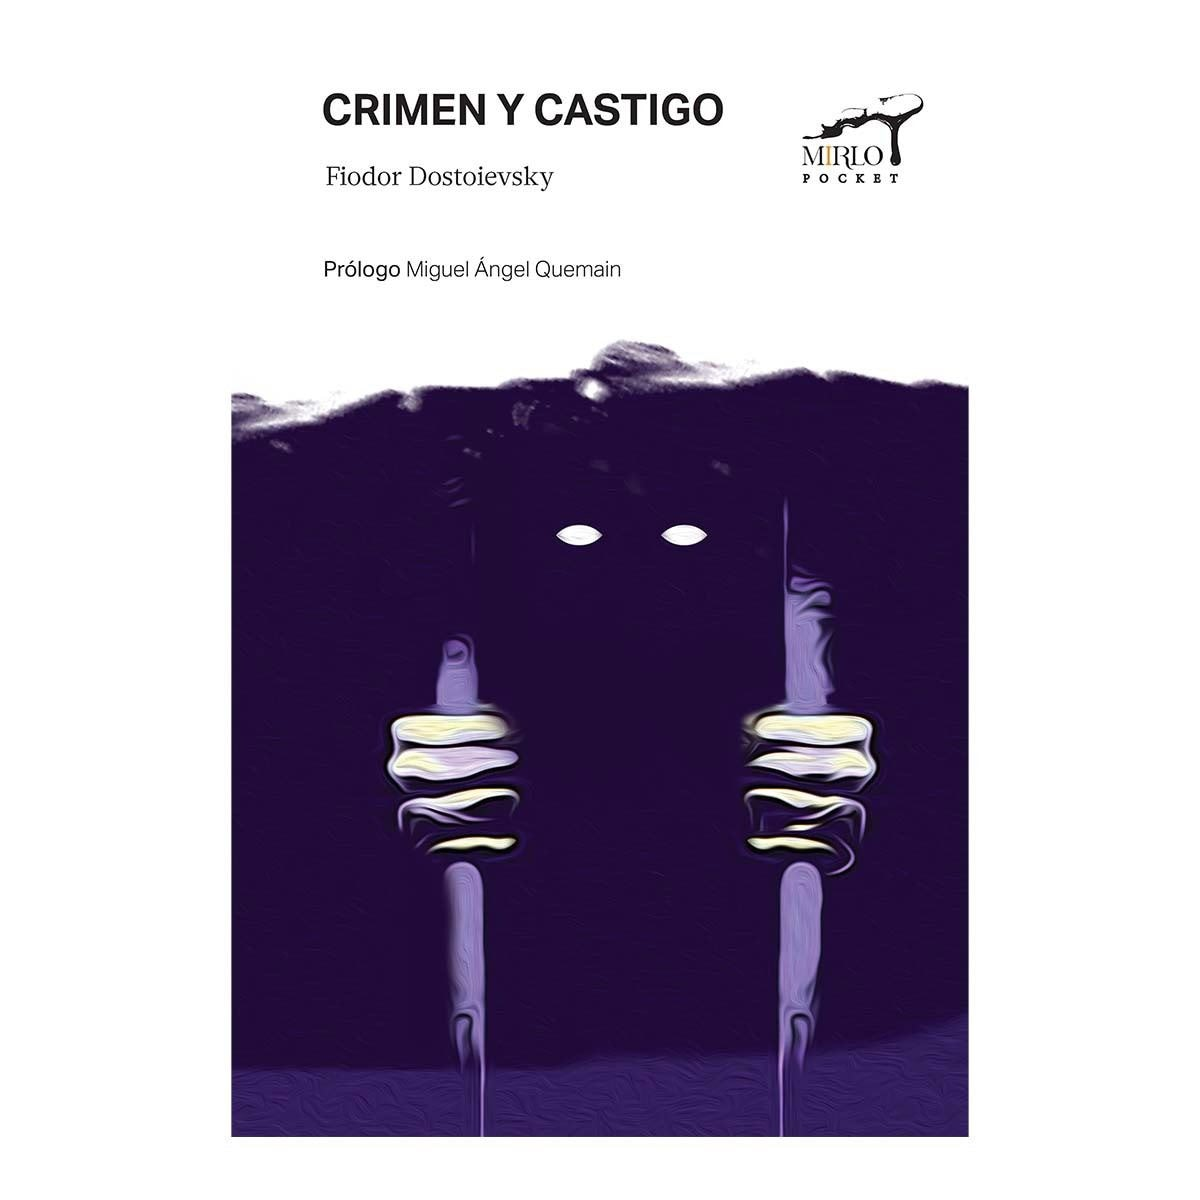 Crimen y castigo - Mirlo Pocket